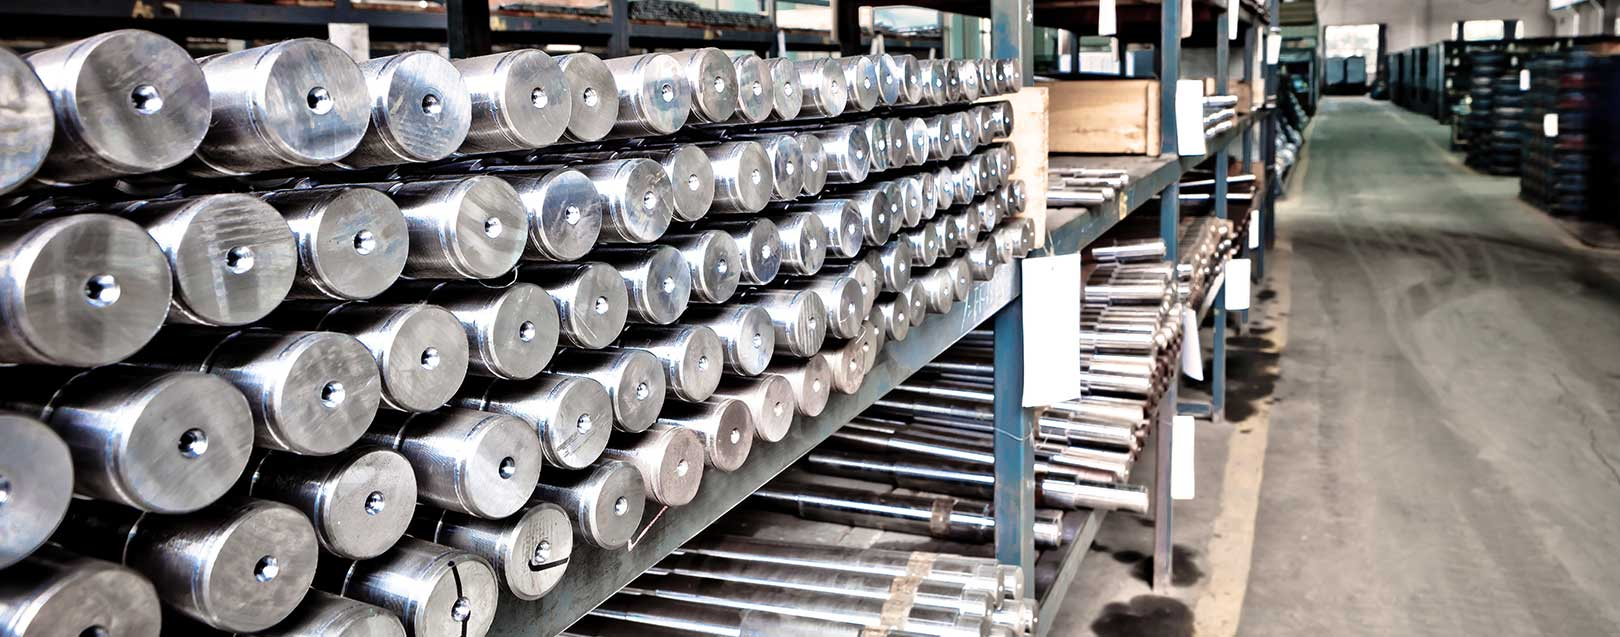 Govt sets up joint task force to ramp up steel demand